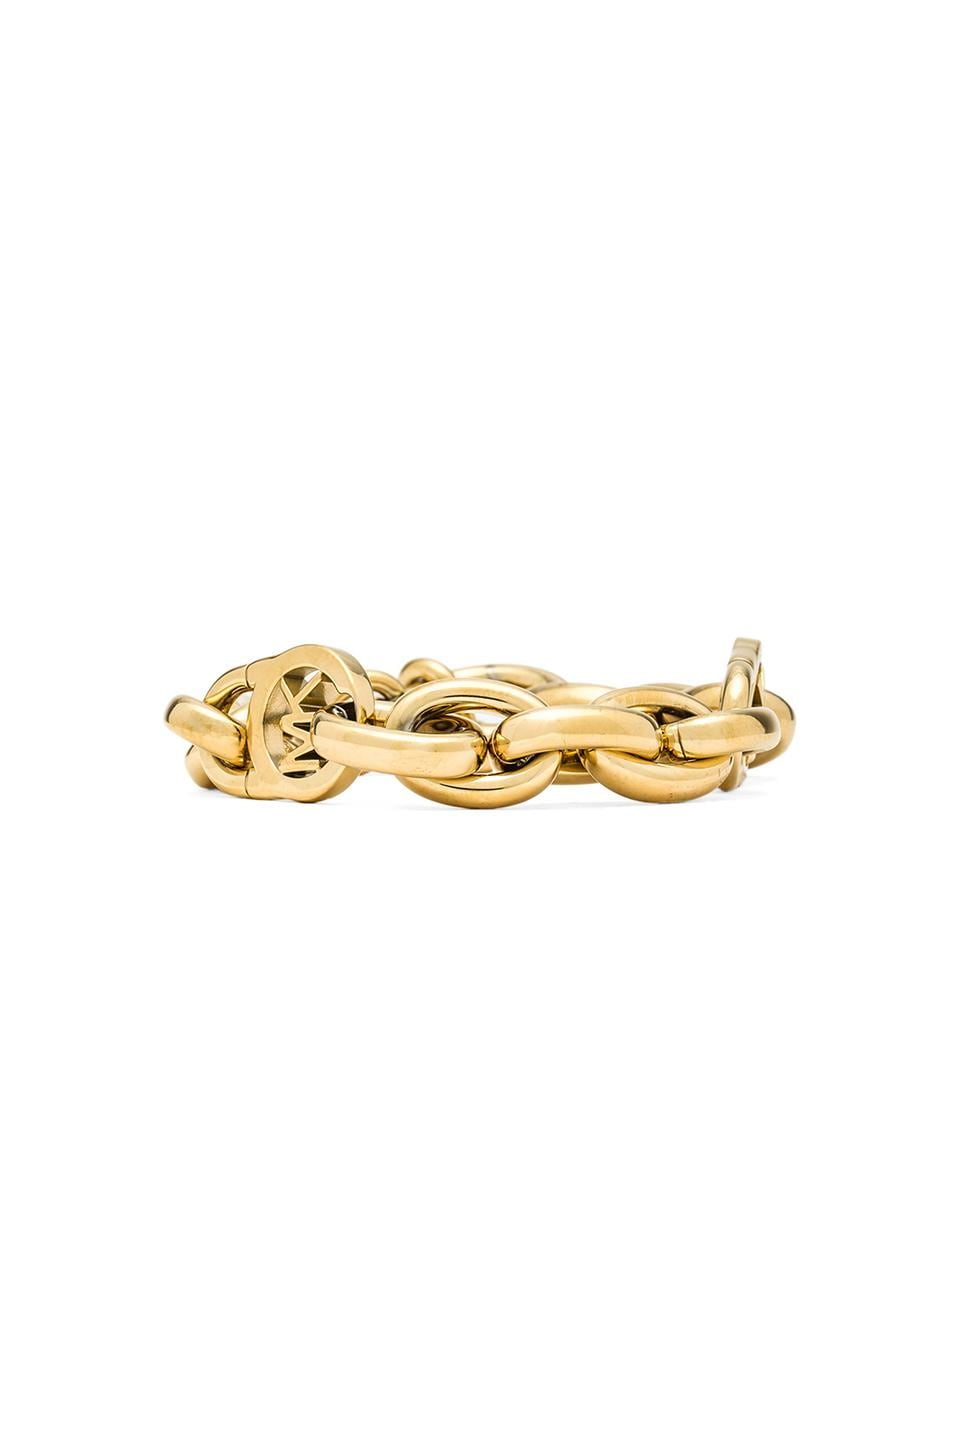 Michael Kors Chain Bracelet in Gold